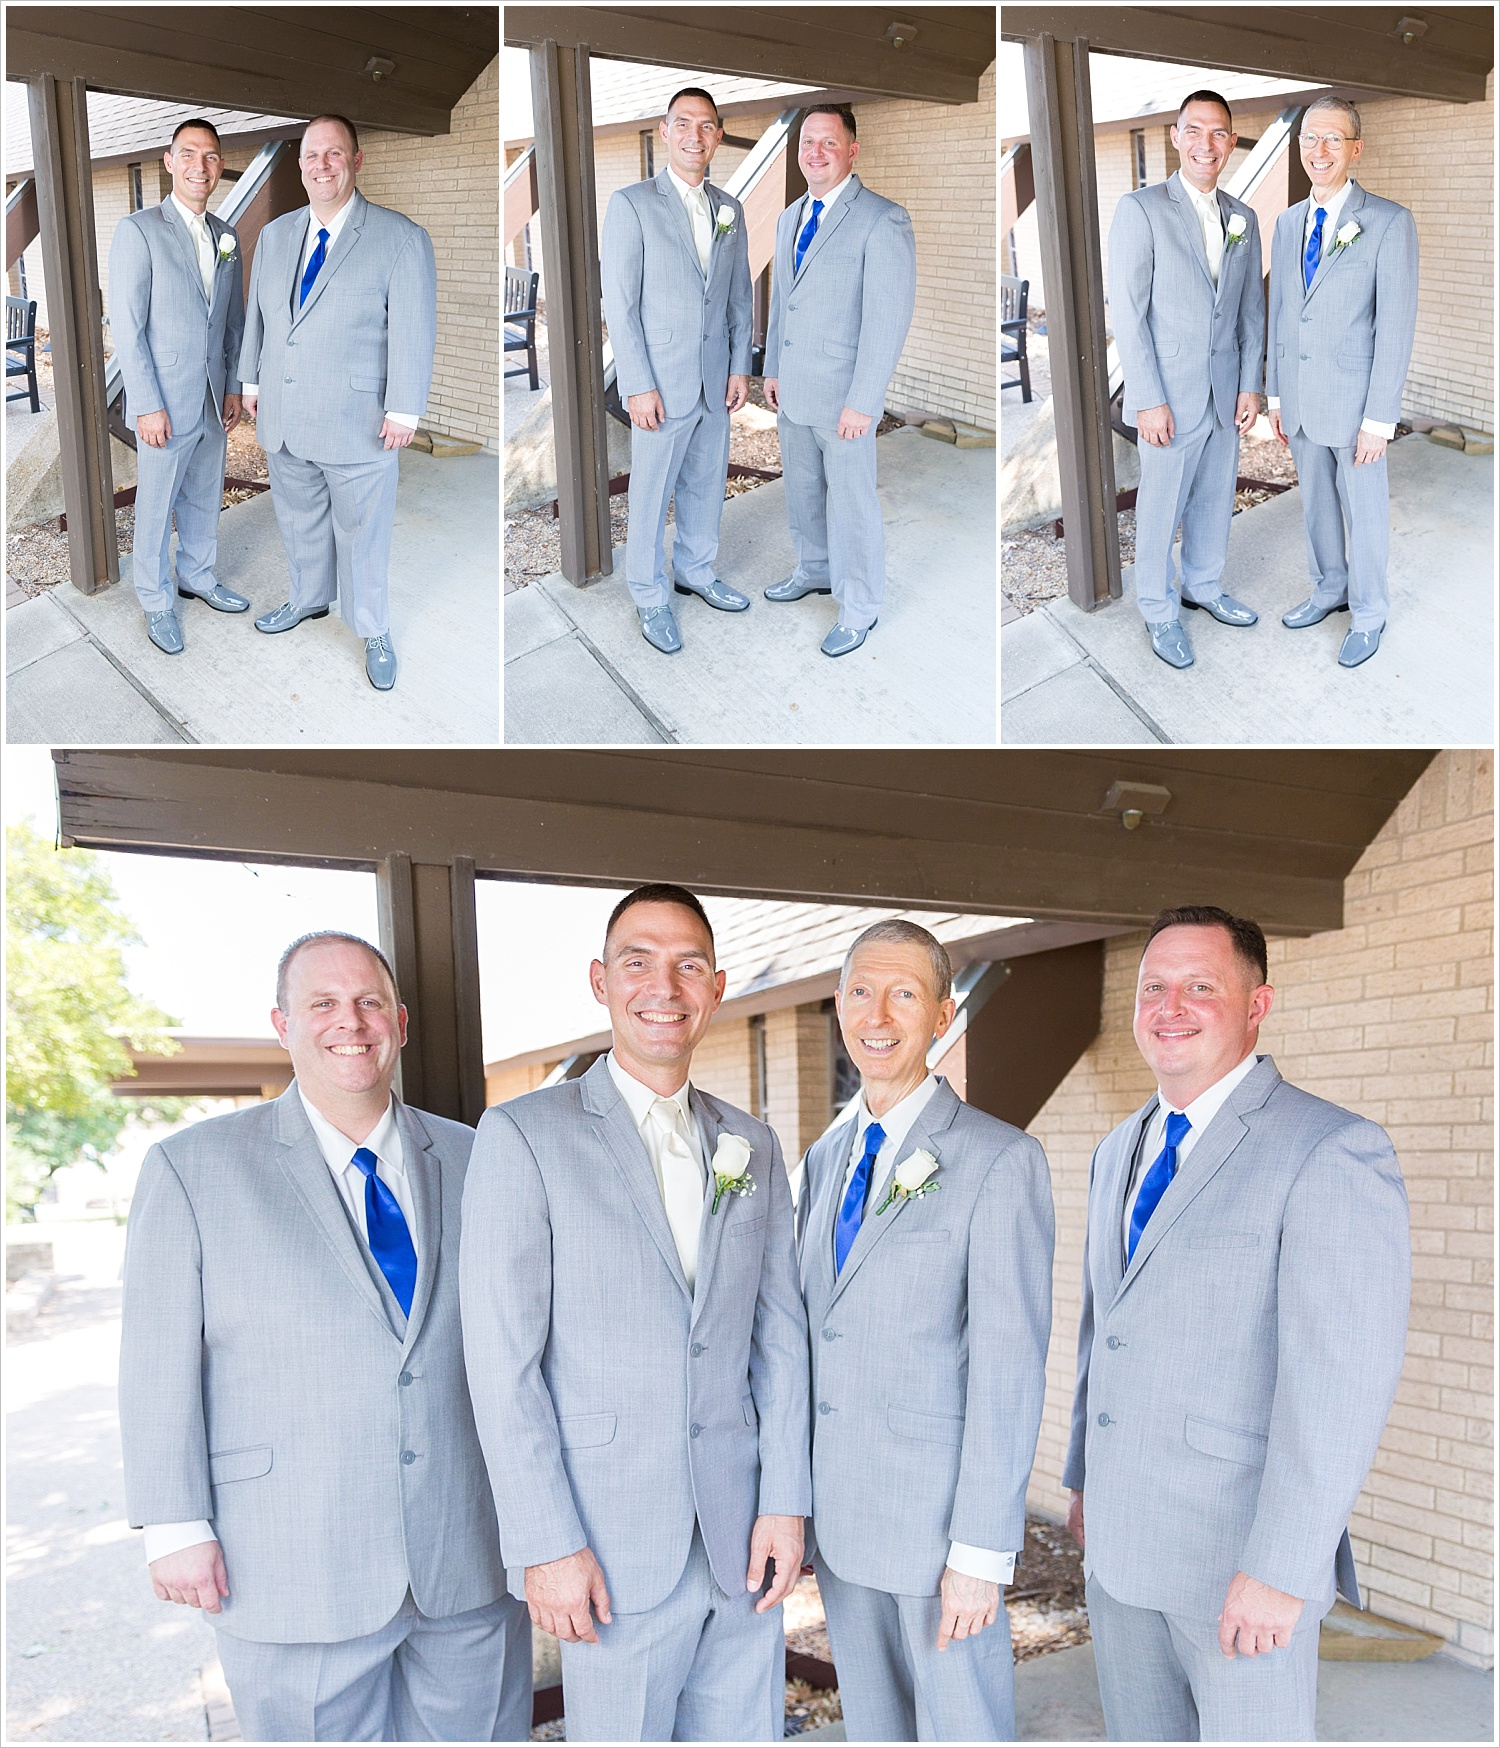 Groom poses with his groomsmen outside Bride and groom in wedding ceremony in front of gorgeous stained glass backdrop at Central Presbyterian Church in Waco/Woodway, TX - Jason & Melaina Photography, www.jasonandmelaina.com